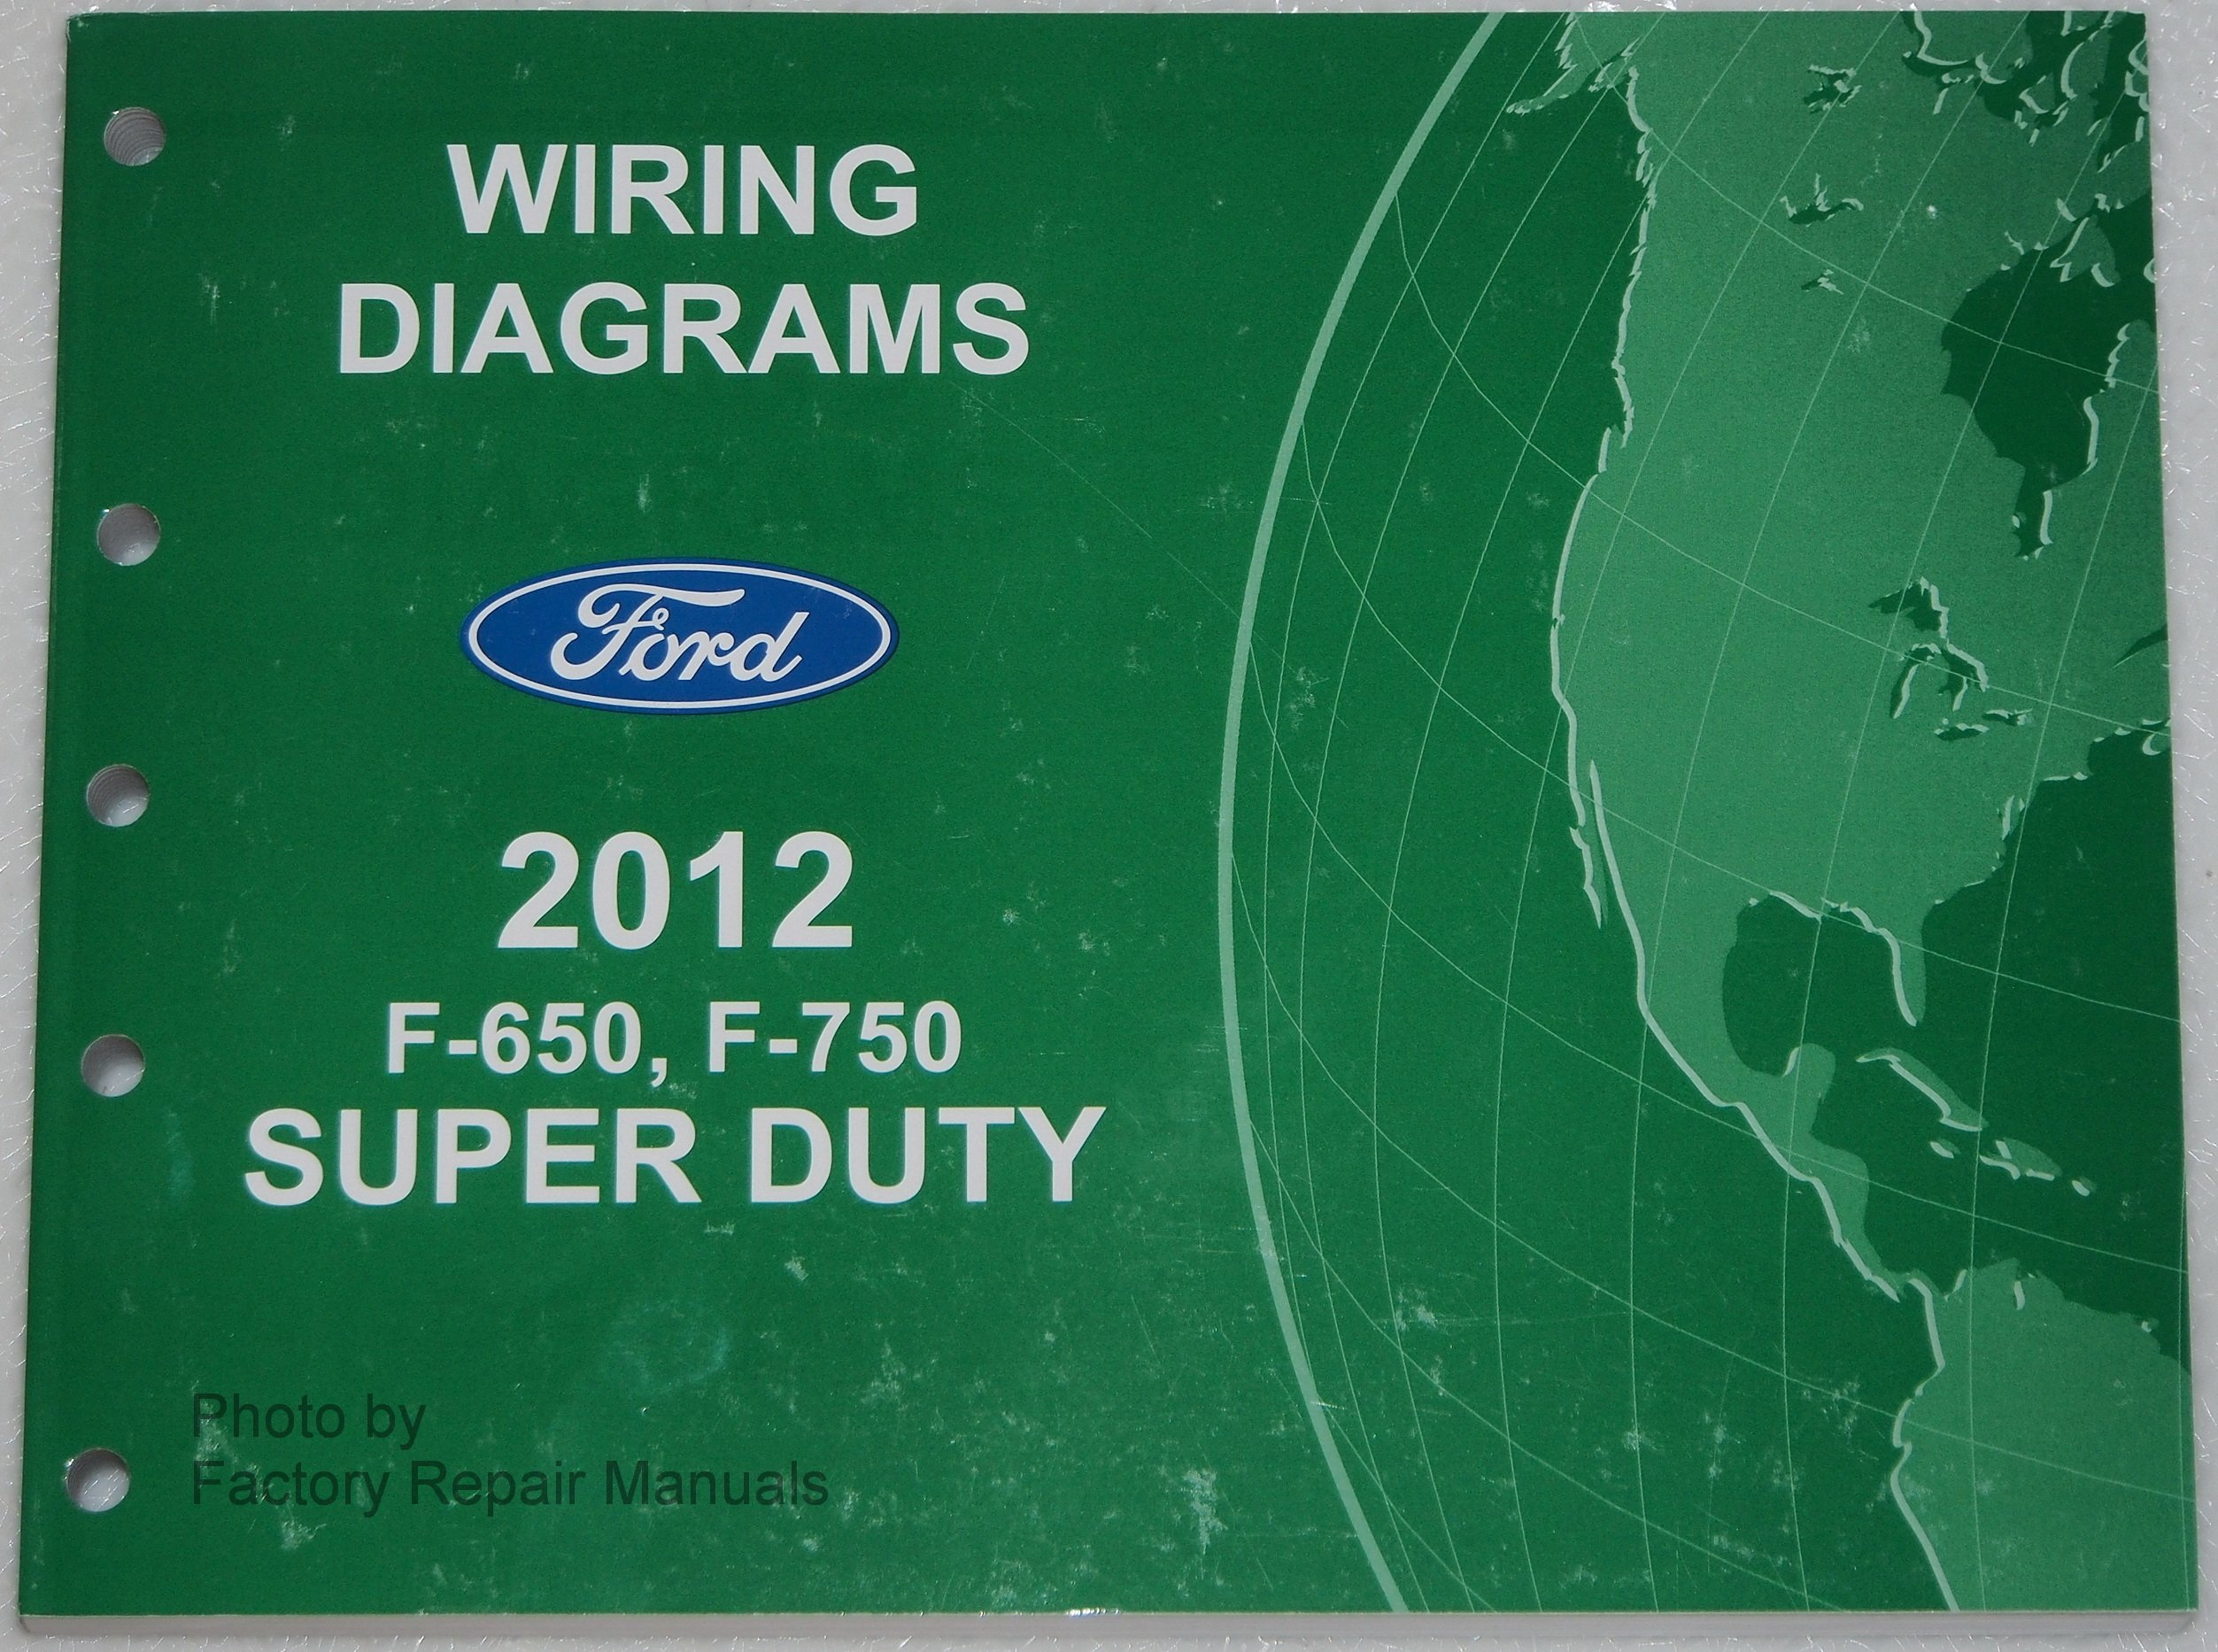 2012 f650 f750 wiring diagram ford motor company amazon com books rh amazon com 2000 ford f750 wiring diagram 2000 ford f750 wiring diagram